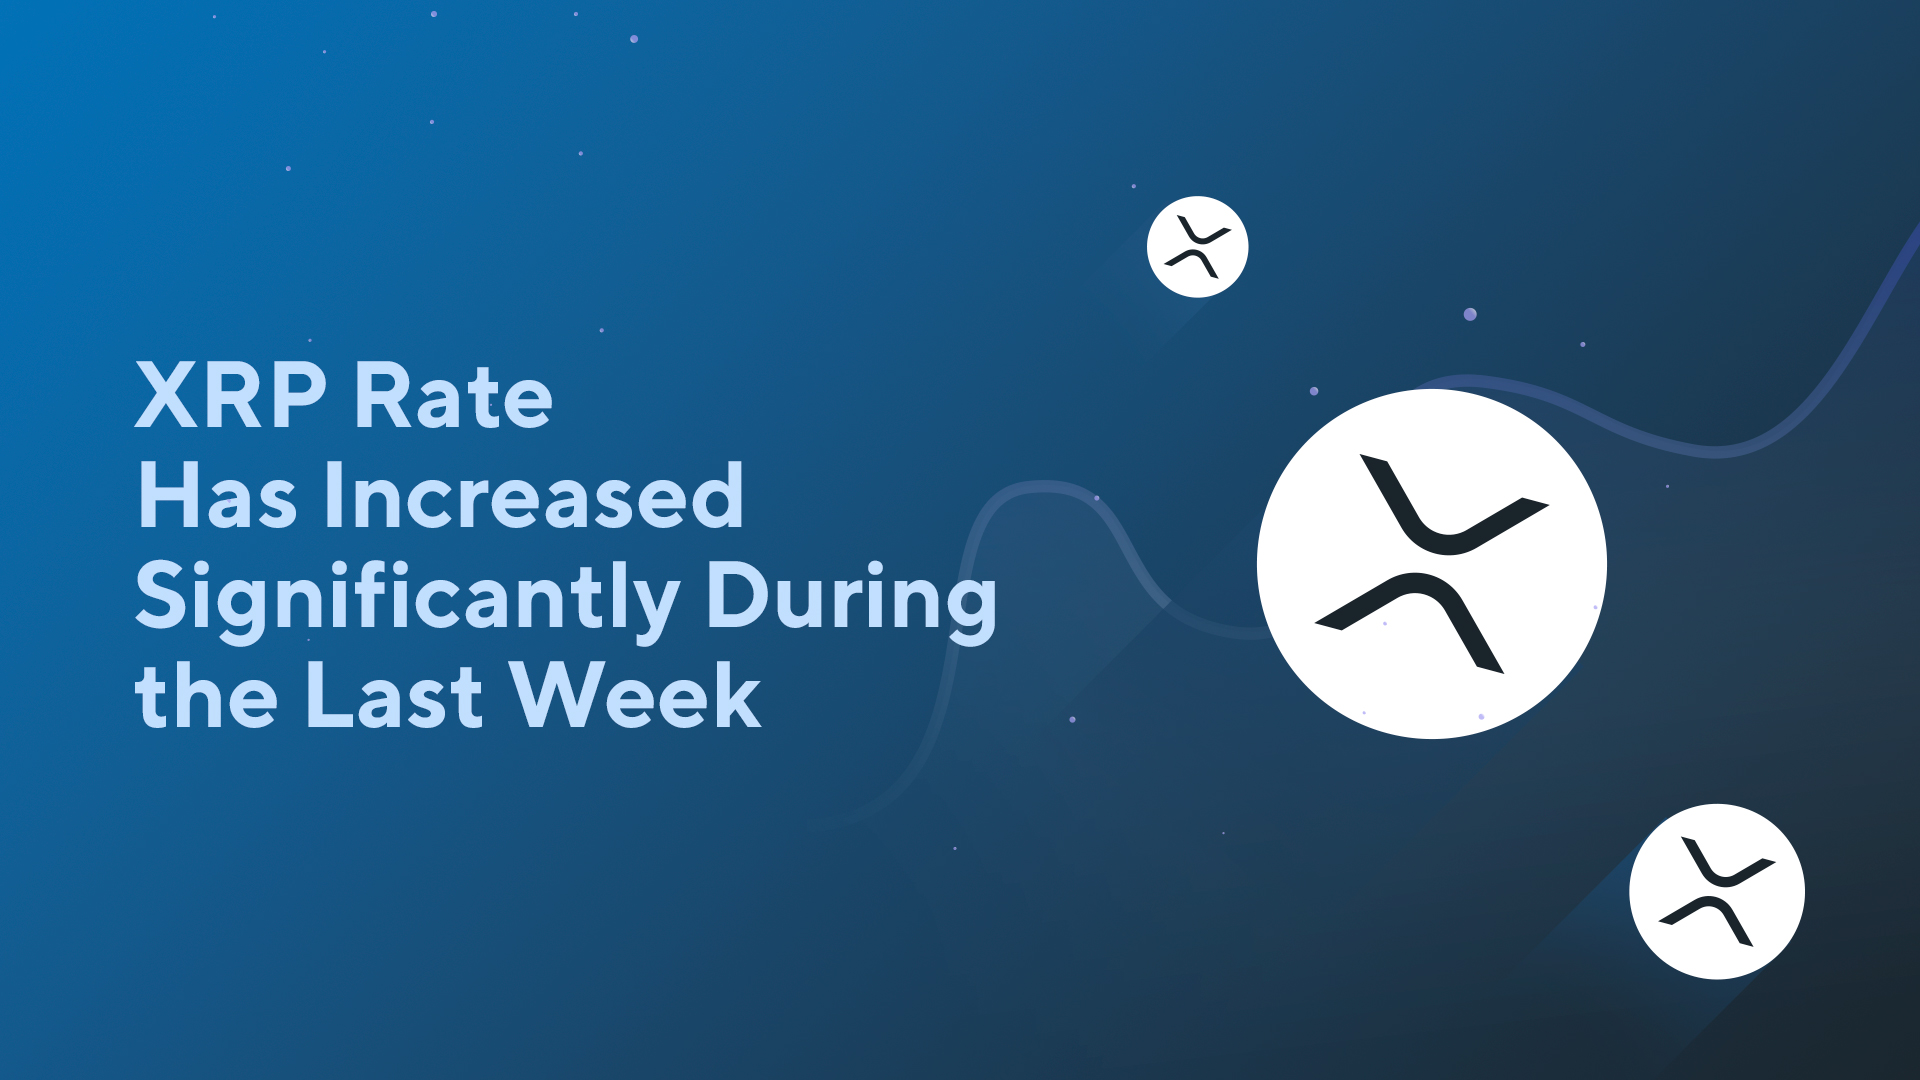 XRP Rate Has Increased Significantly During the Last Week